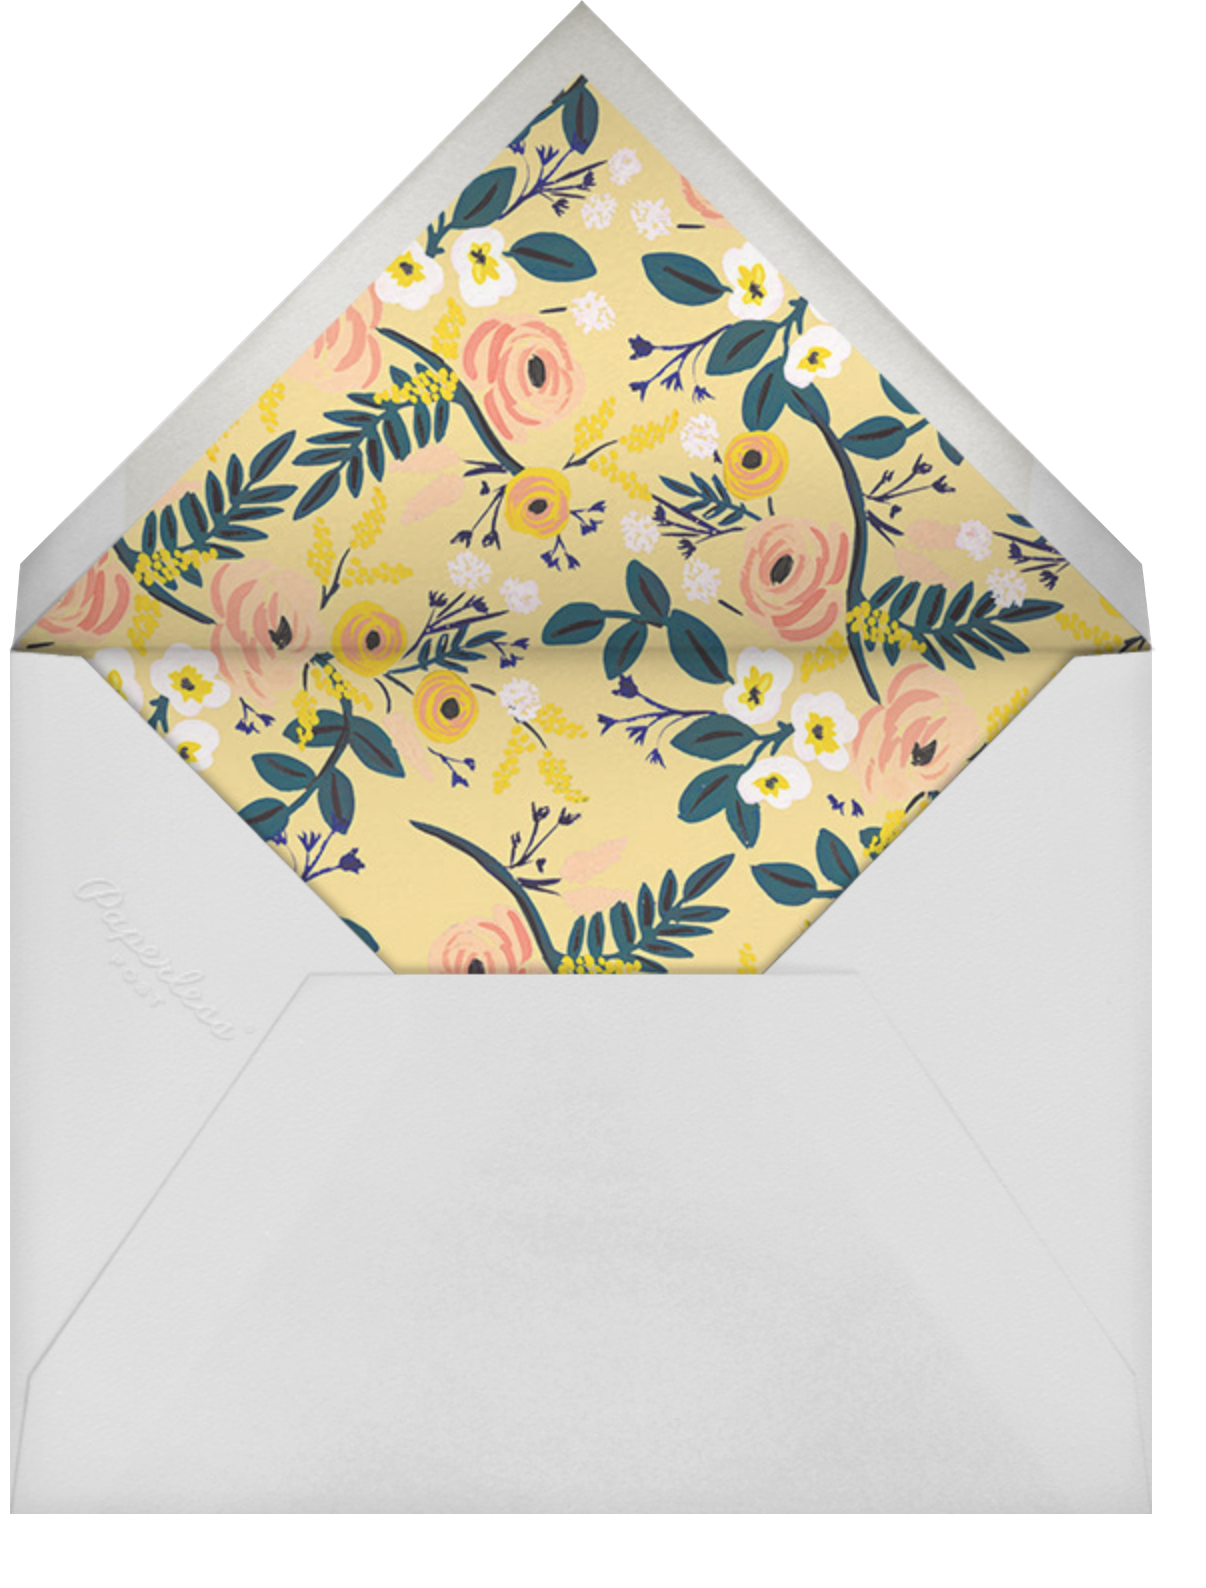 Cloche - Rifle Paper Co. - Party save the dates - envelope back